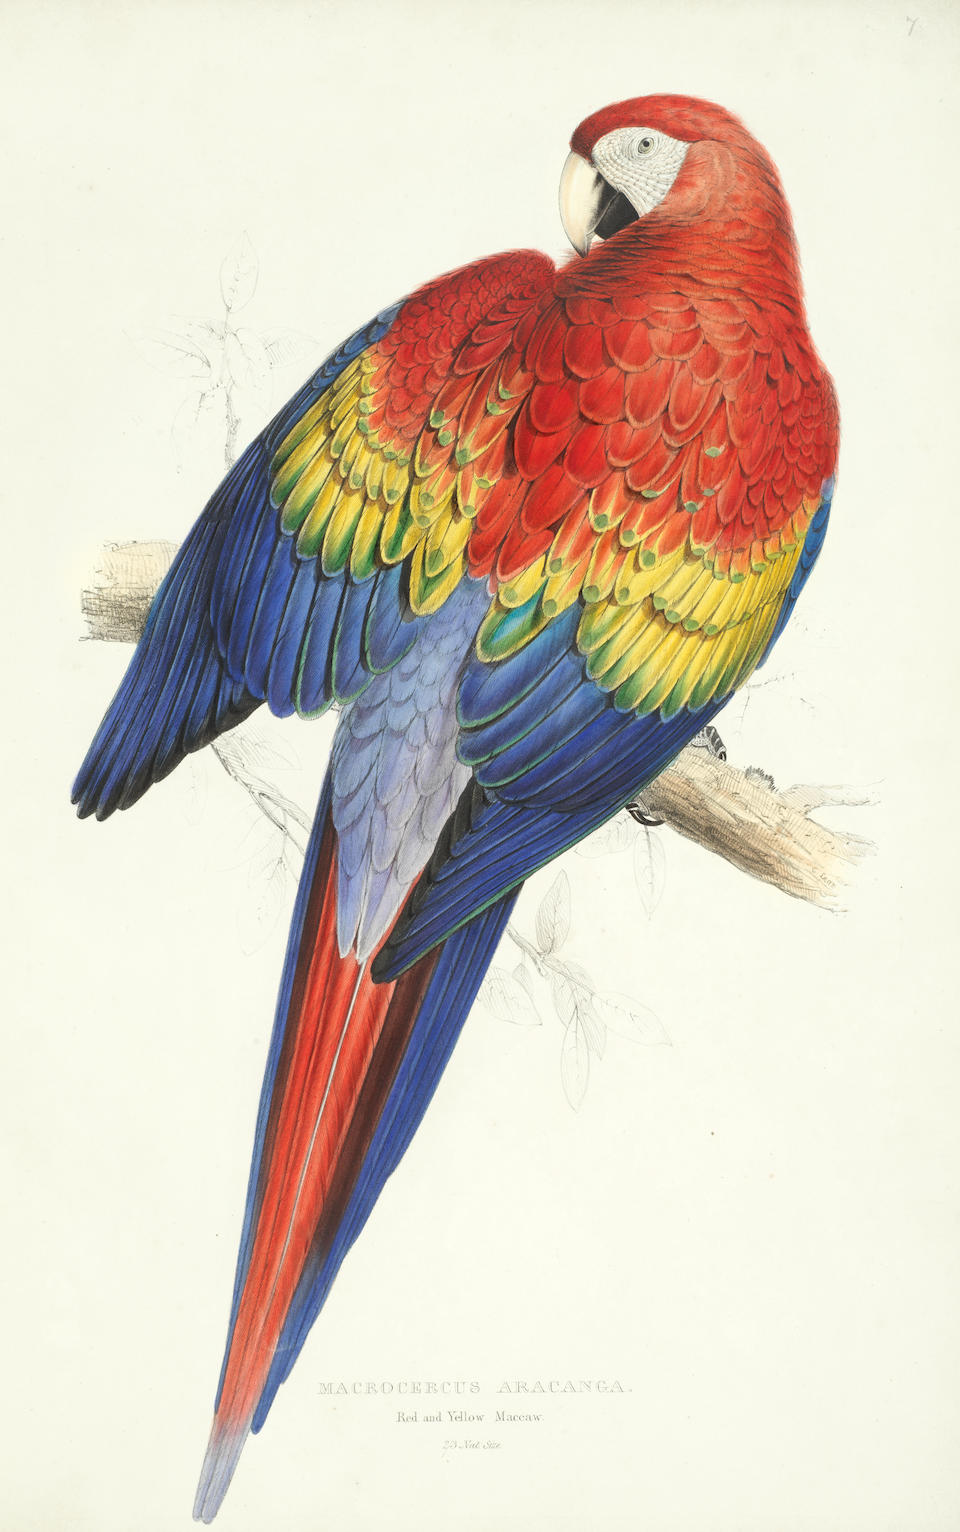 LEAR (EDWARD) Illustrations of the Family of Psittacidae, or Parrots: the greater part of them species hitherto unfigured... drawn from life, and on stone, FIRST EDITION, E. Lear, [1830]-1832